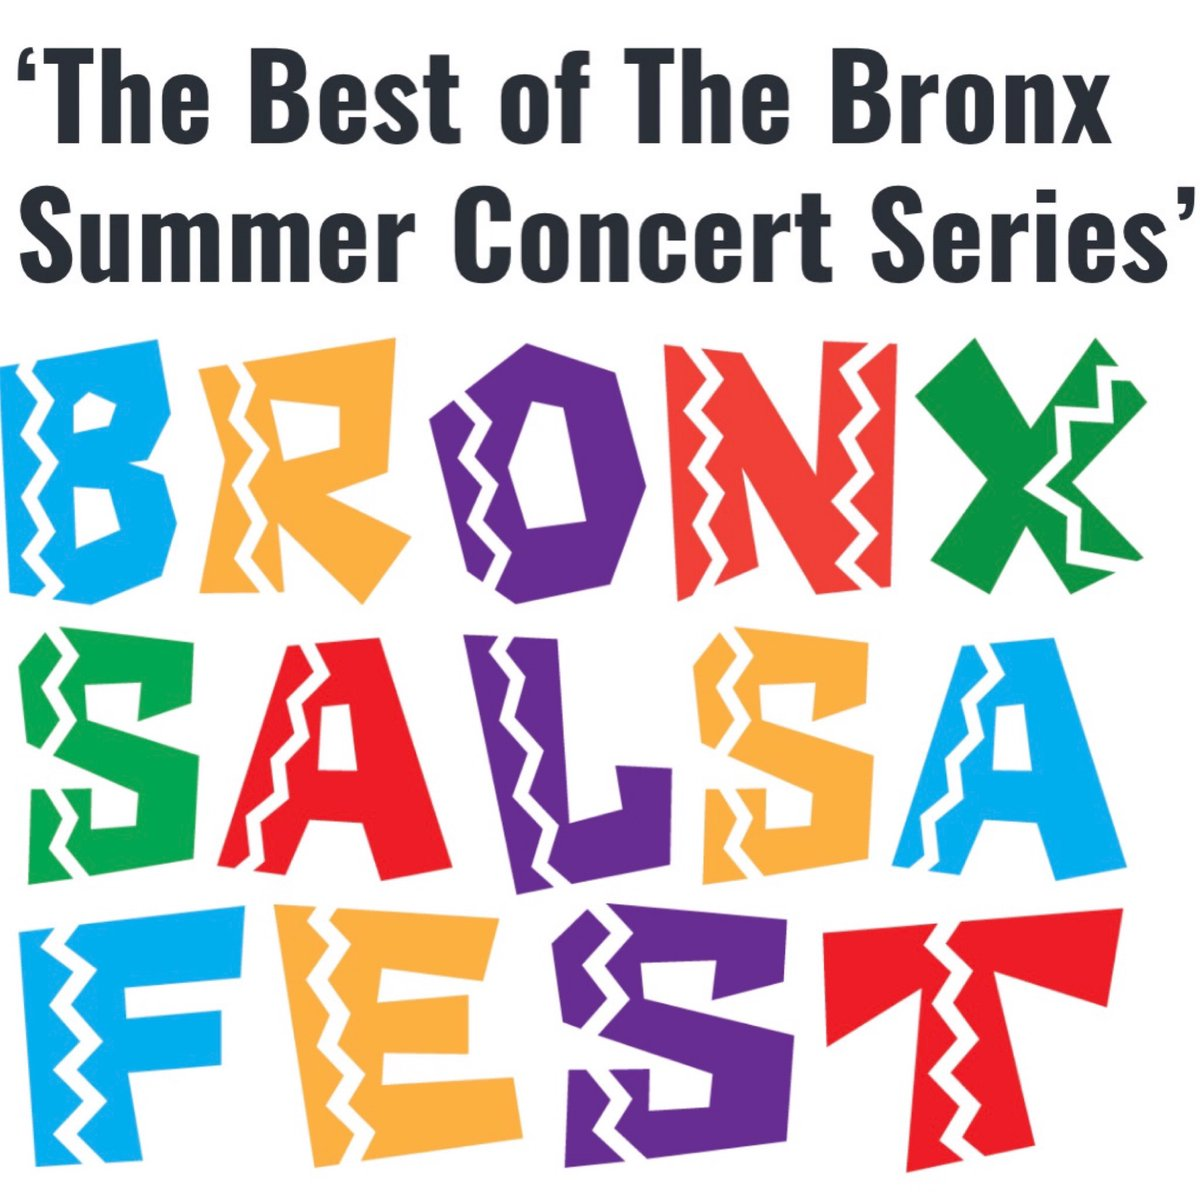 The Best of Summer Concert Series continues this Sunday, 8/2 at 1pm. This week featuring Ismael Miranda and TKA. Tune in on Bronxnet Ch. 67 Optimum / 2133 Fios or  worldwide